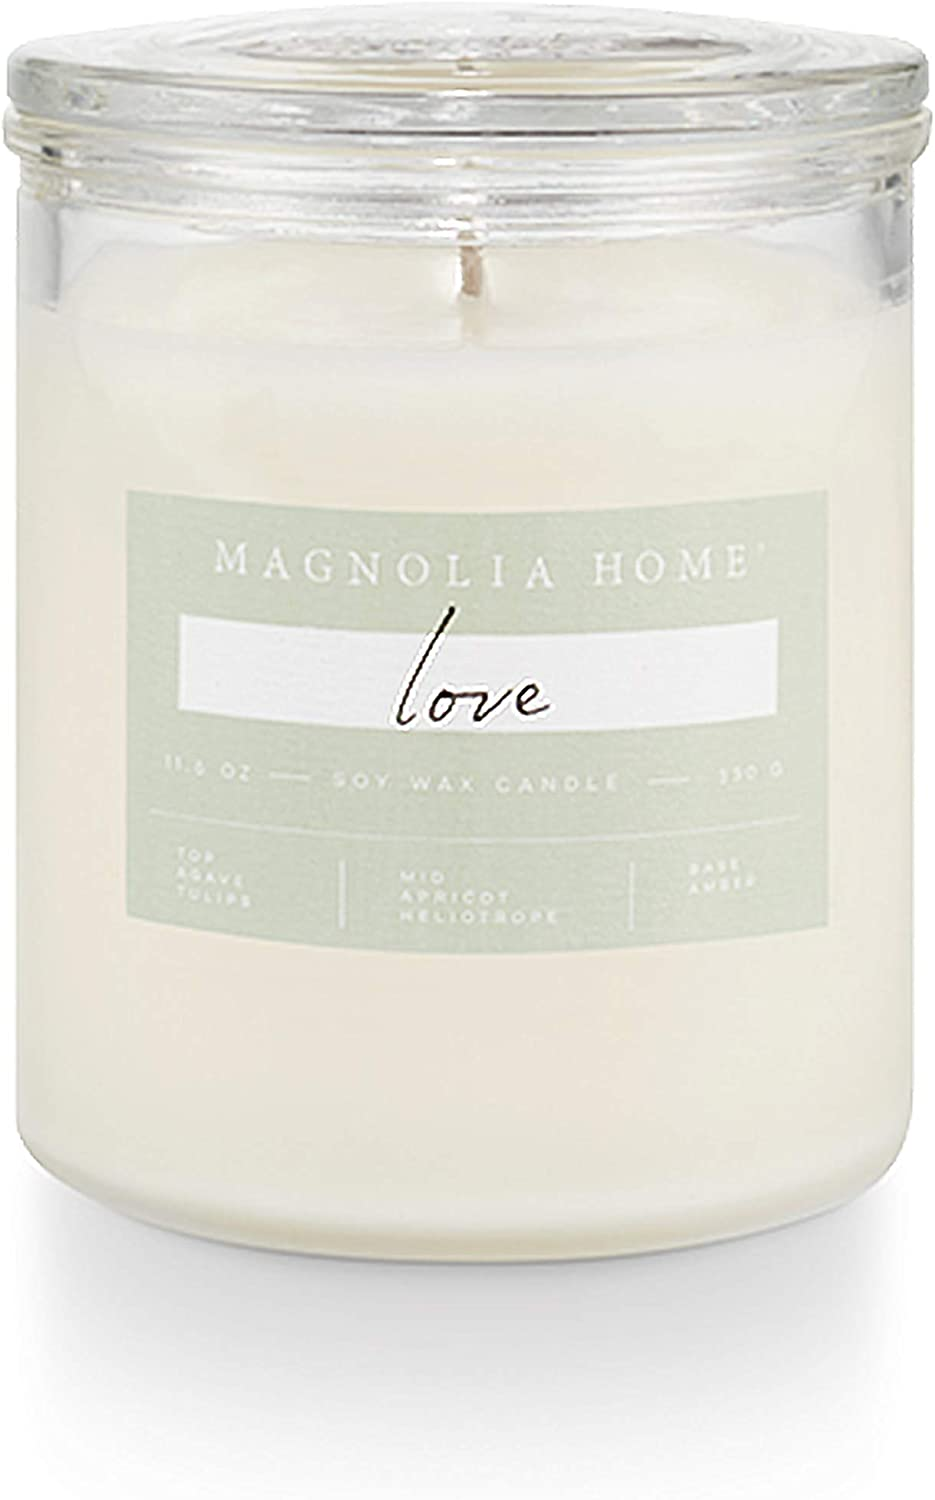 Magnolia Home Love Lidded-Glass Candle Home Decor By Joanna Gaines